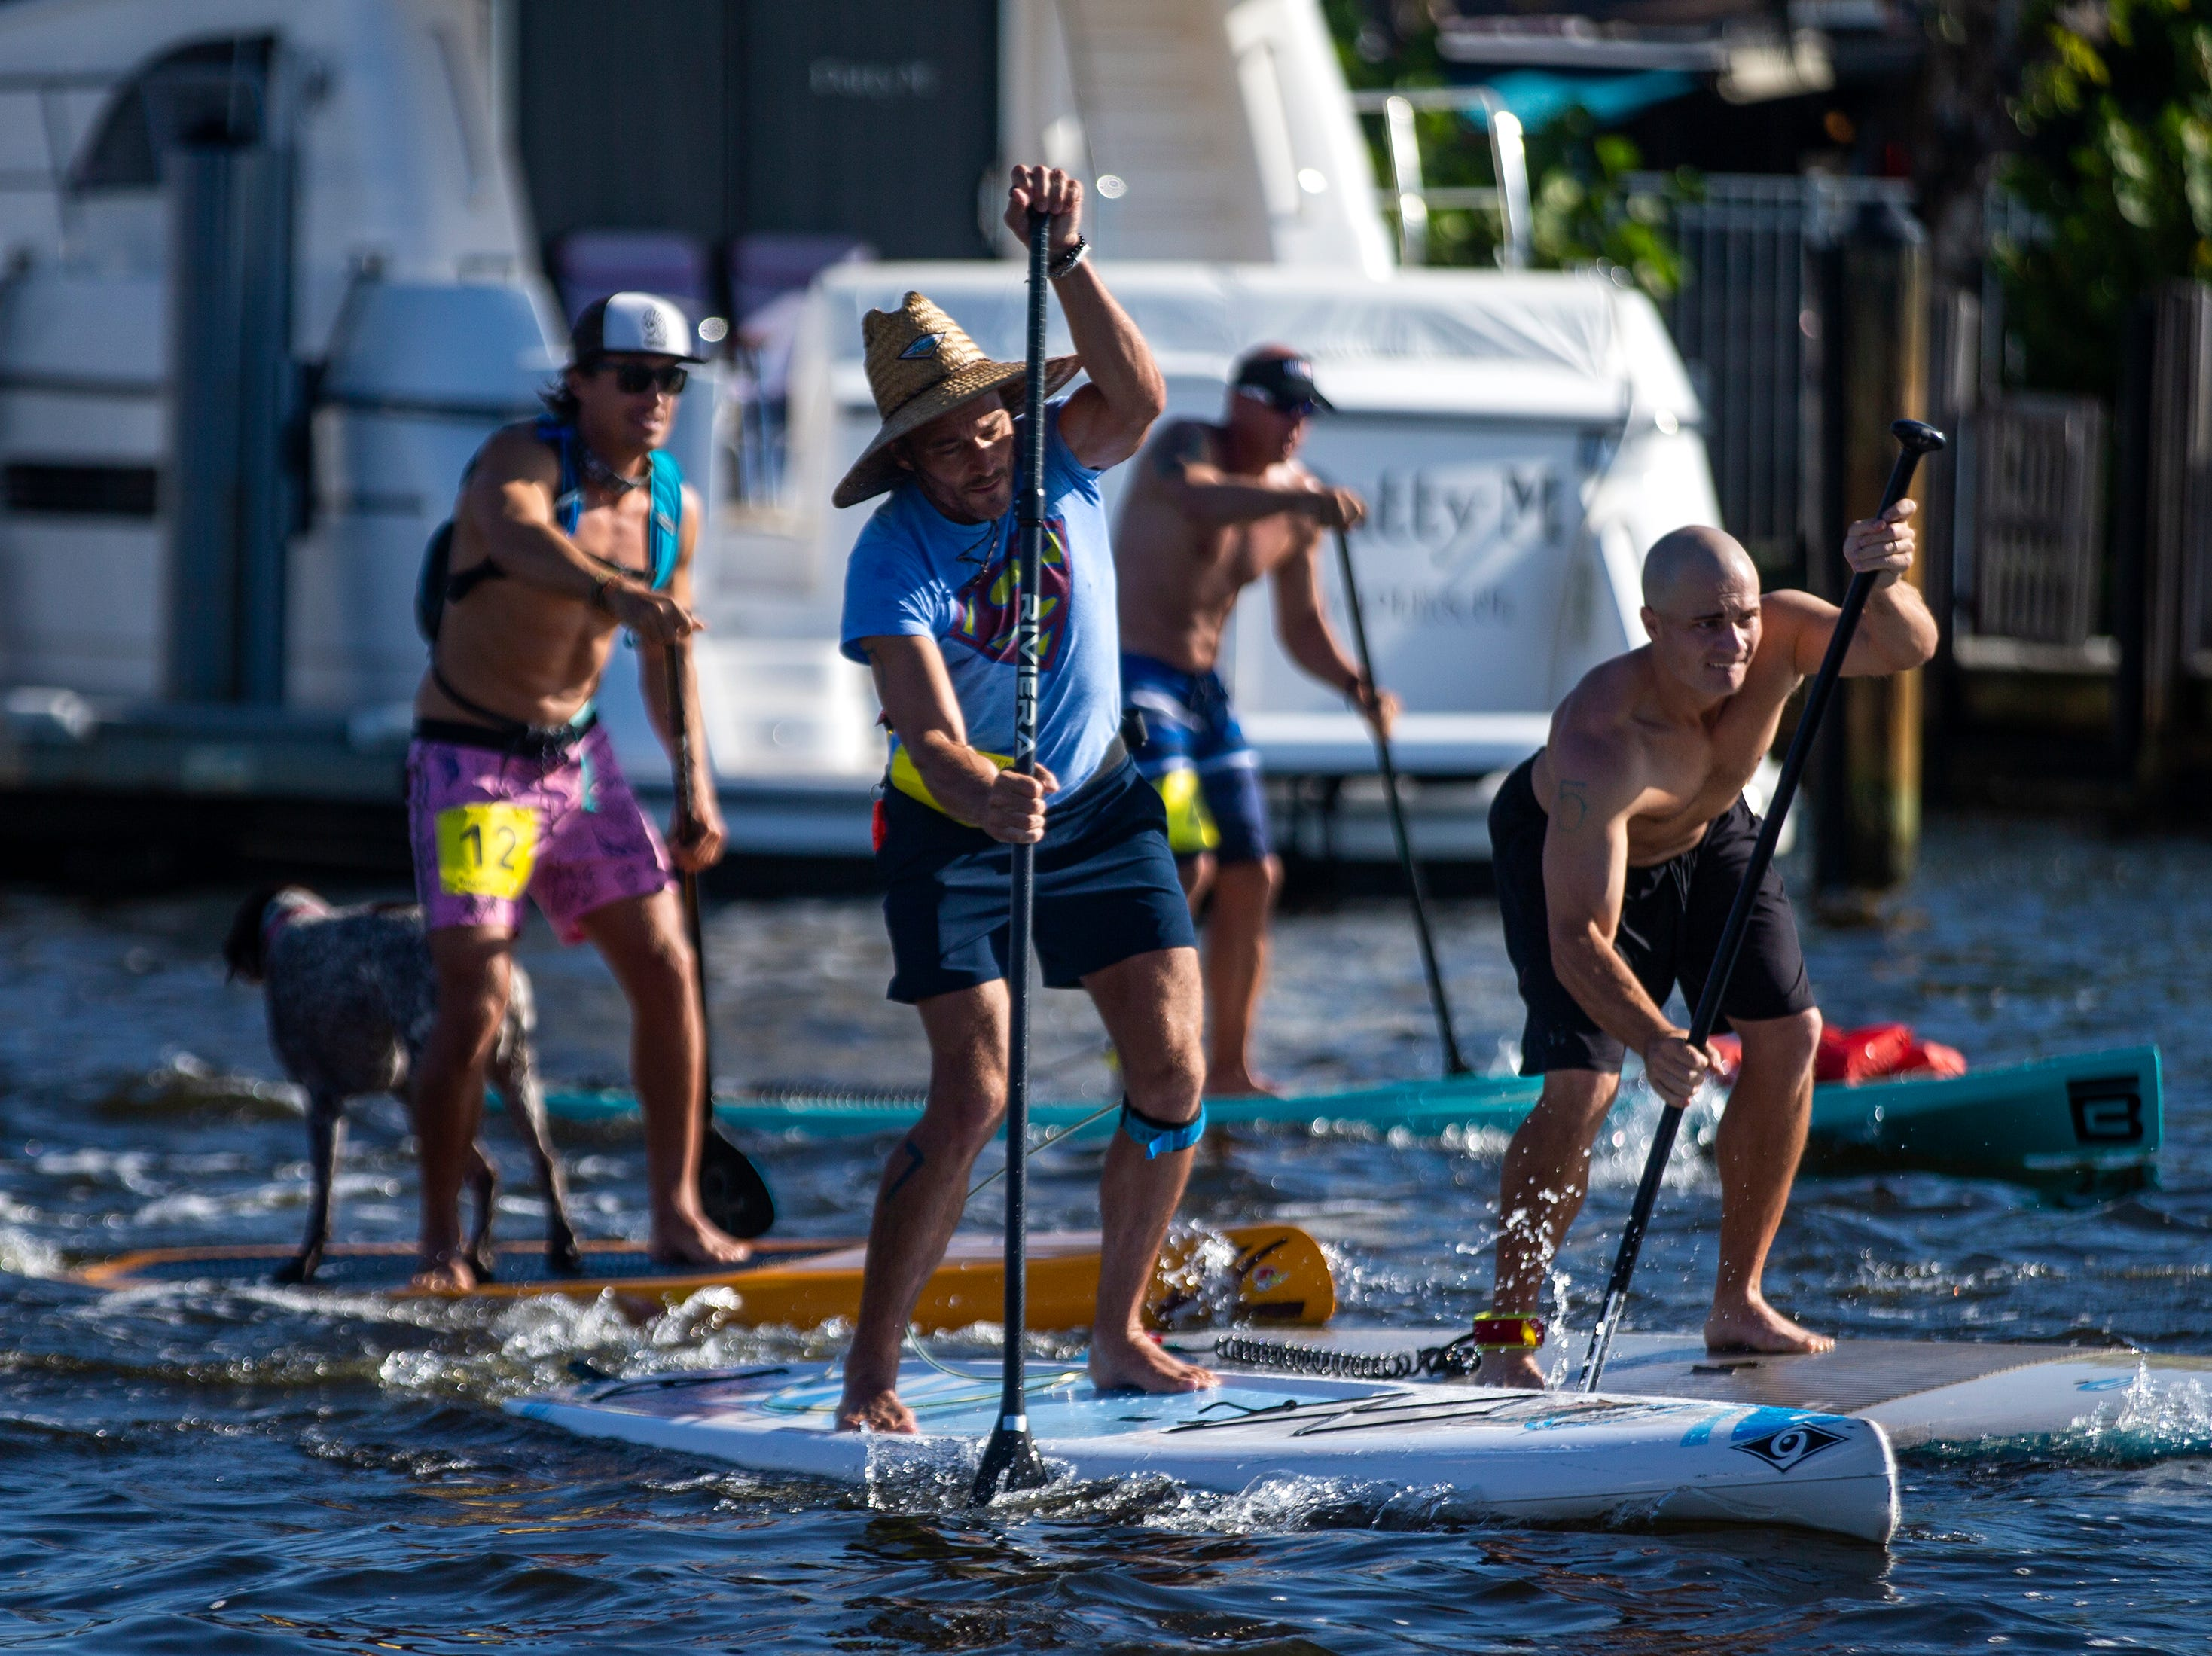 Competitors in the amateur stand up paddleboard race make their way down the race course, Saturday, May 11, 2019, during the 43rd annual Great Dock Canoe Race at Crayton Cove in Naples.